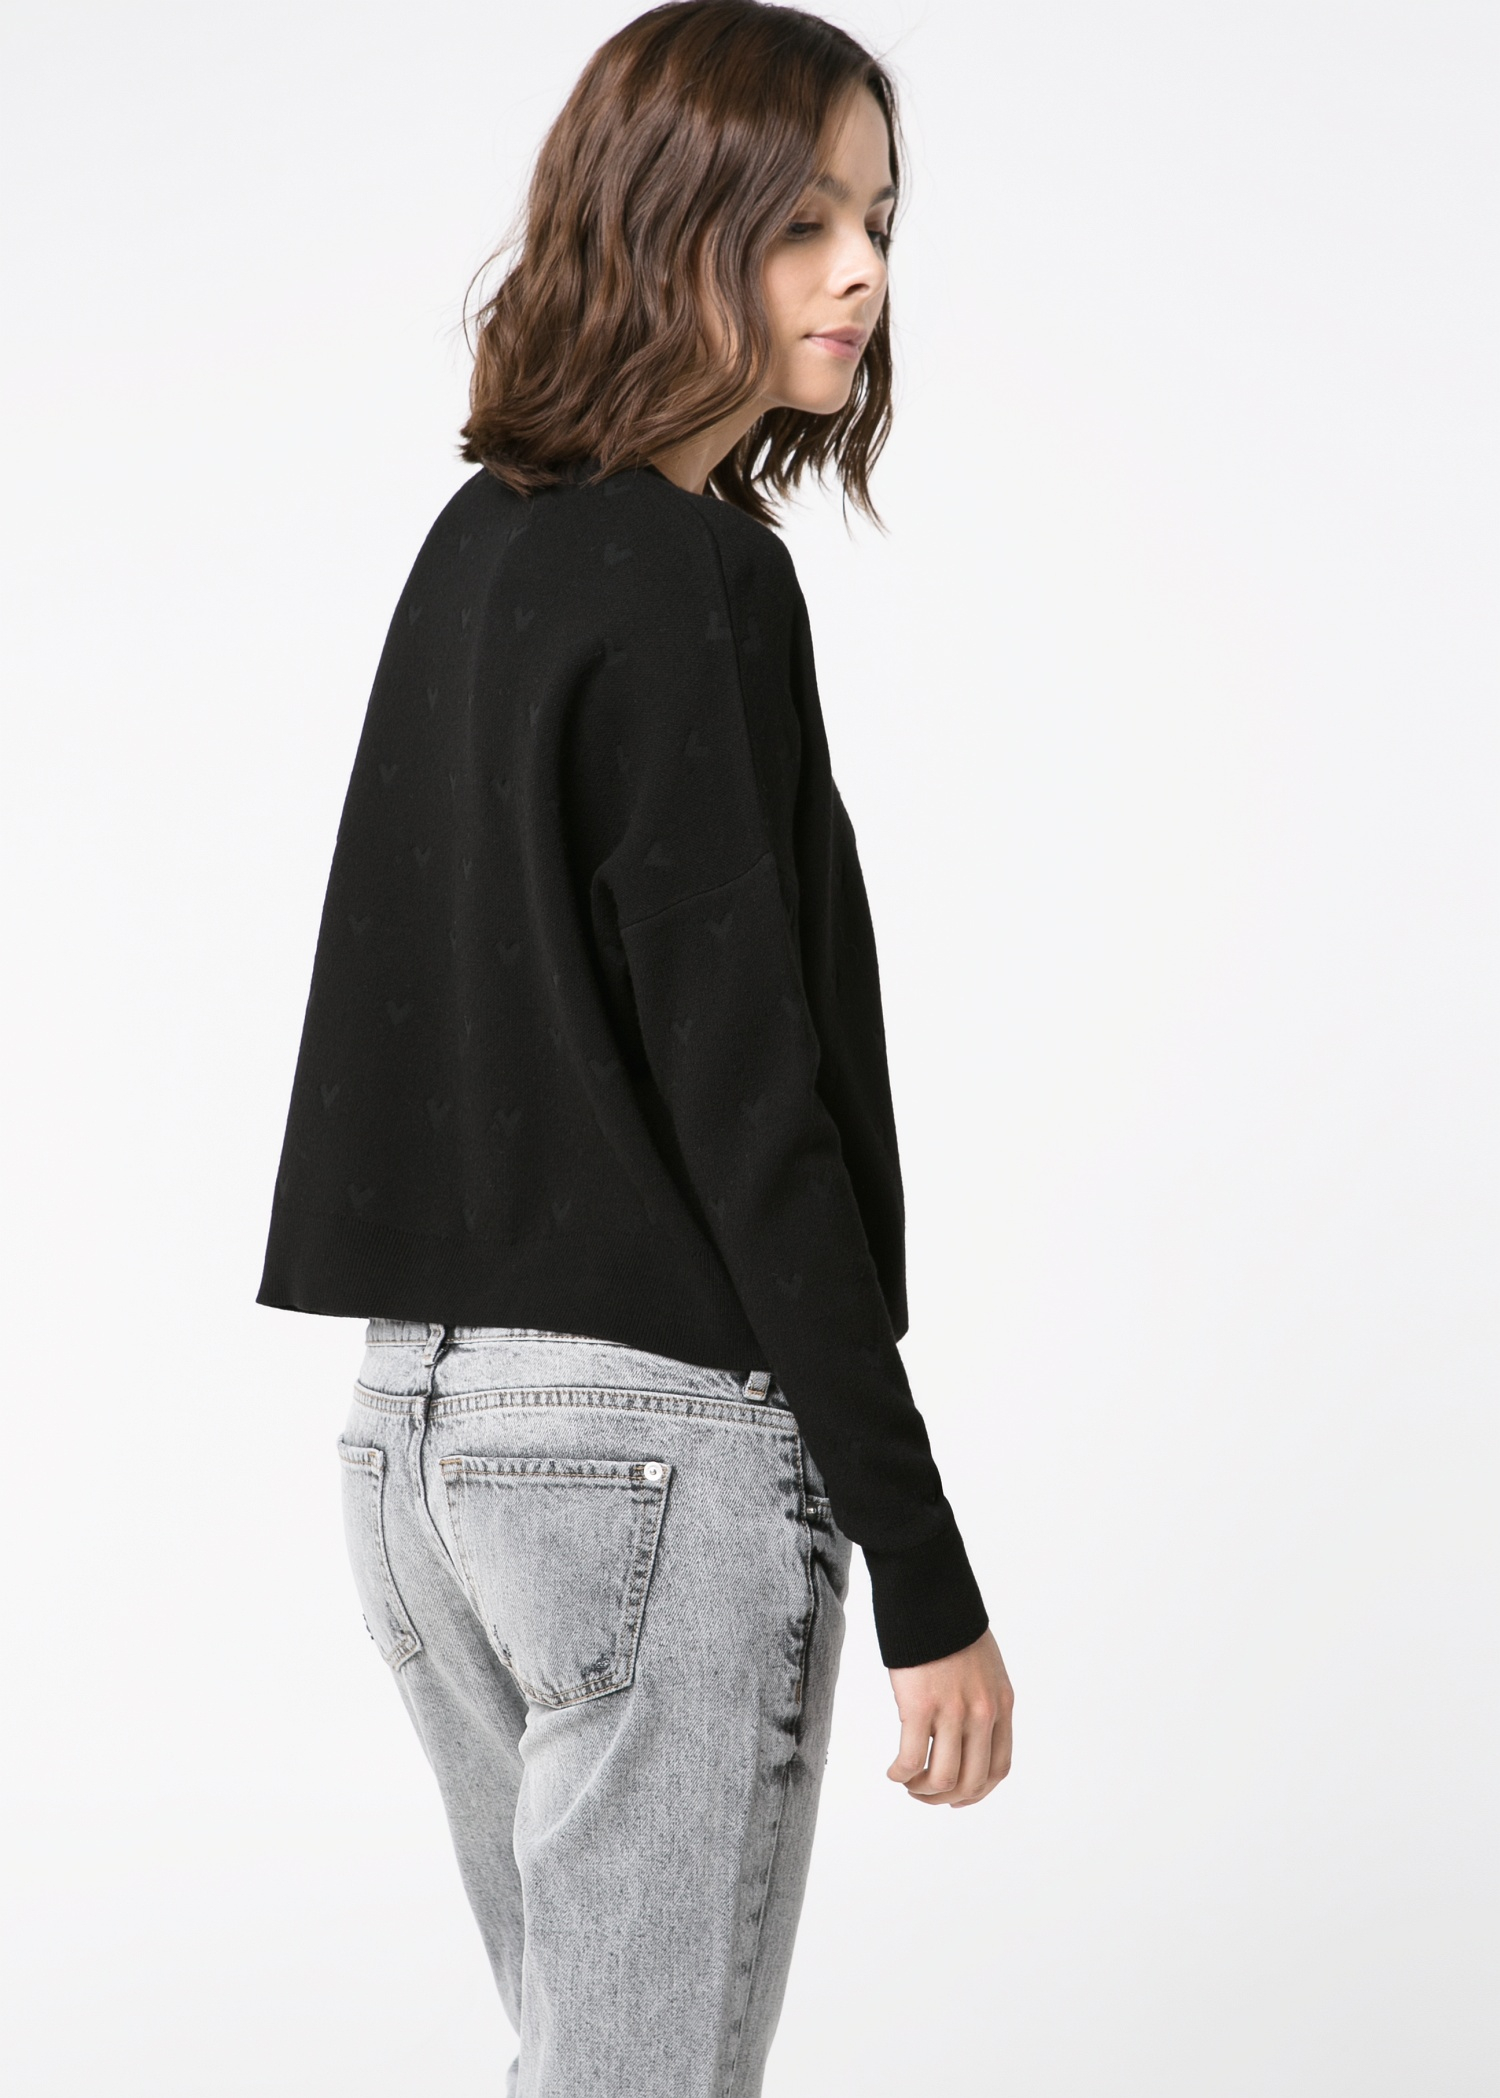 Mango Heart-Texture Cropped Sweater in Black | Lyst